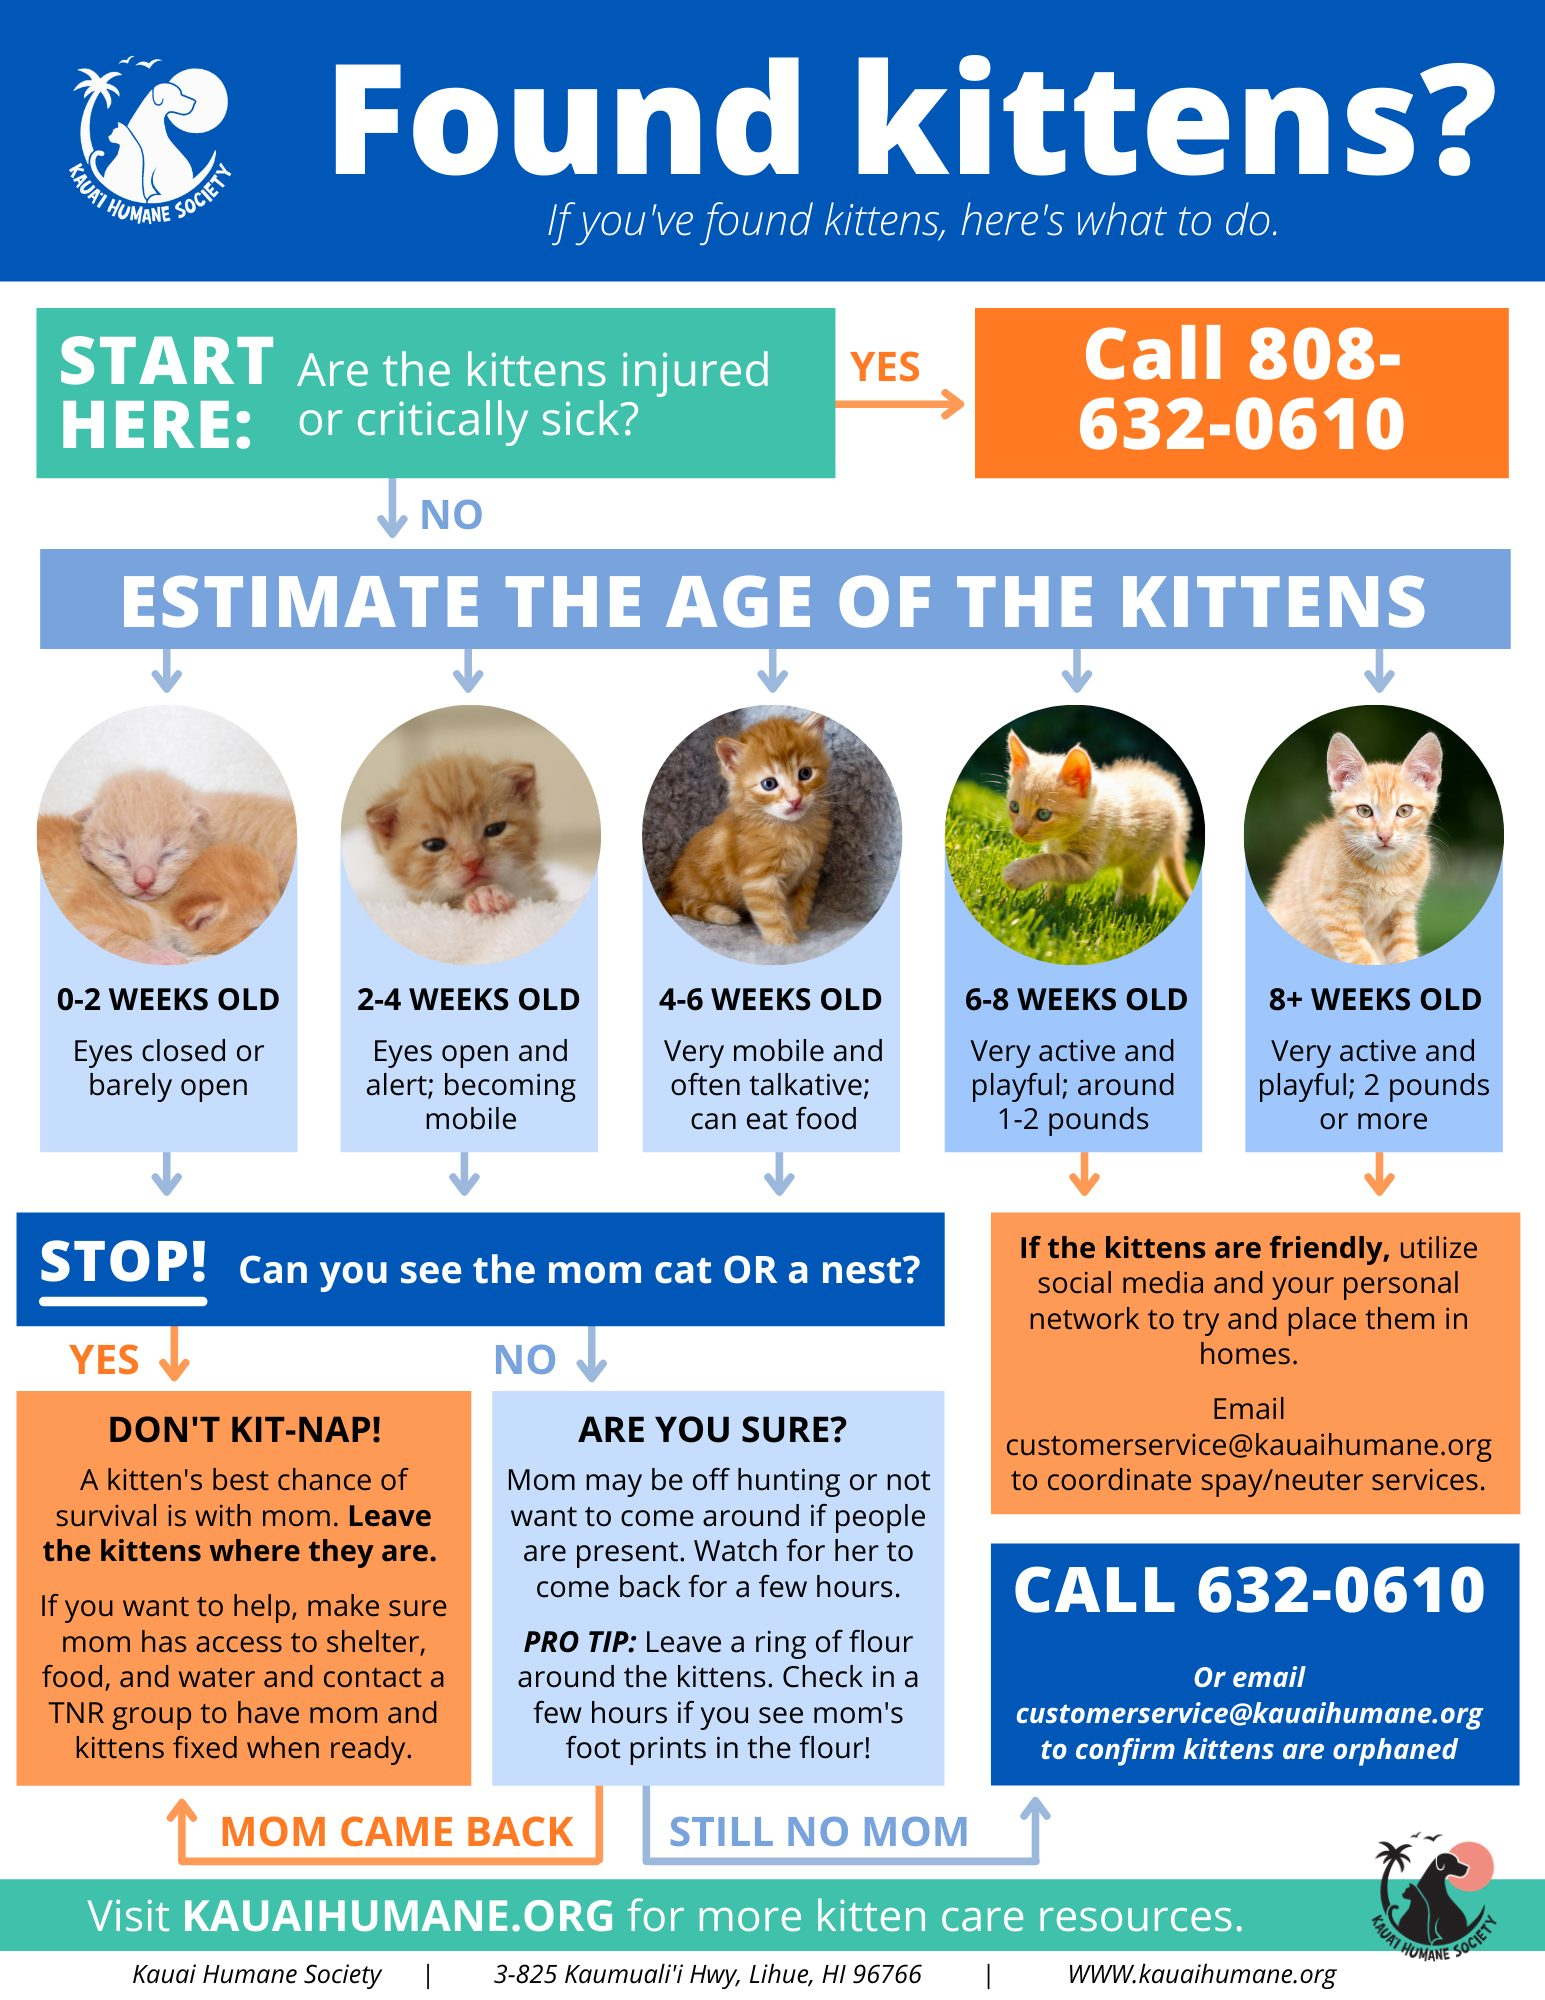 A flow chart for what to do with found kittens.